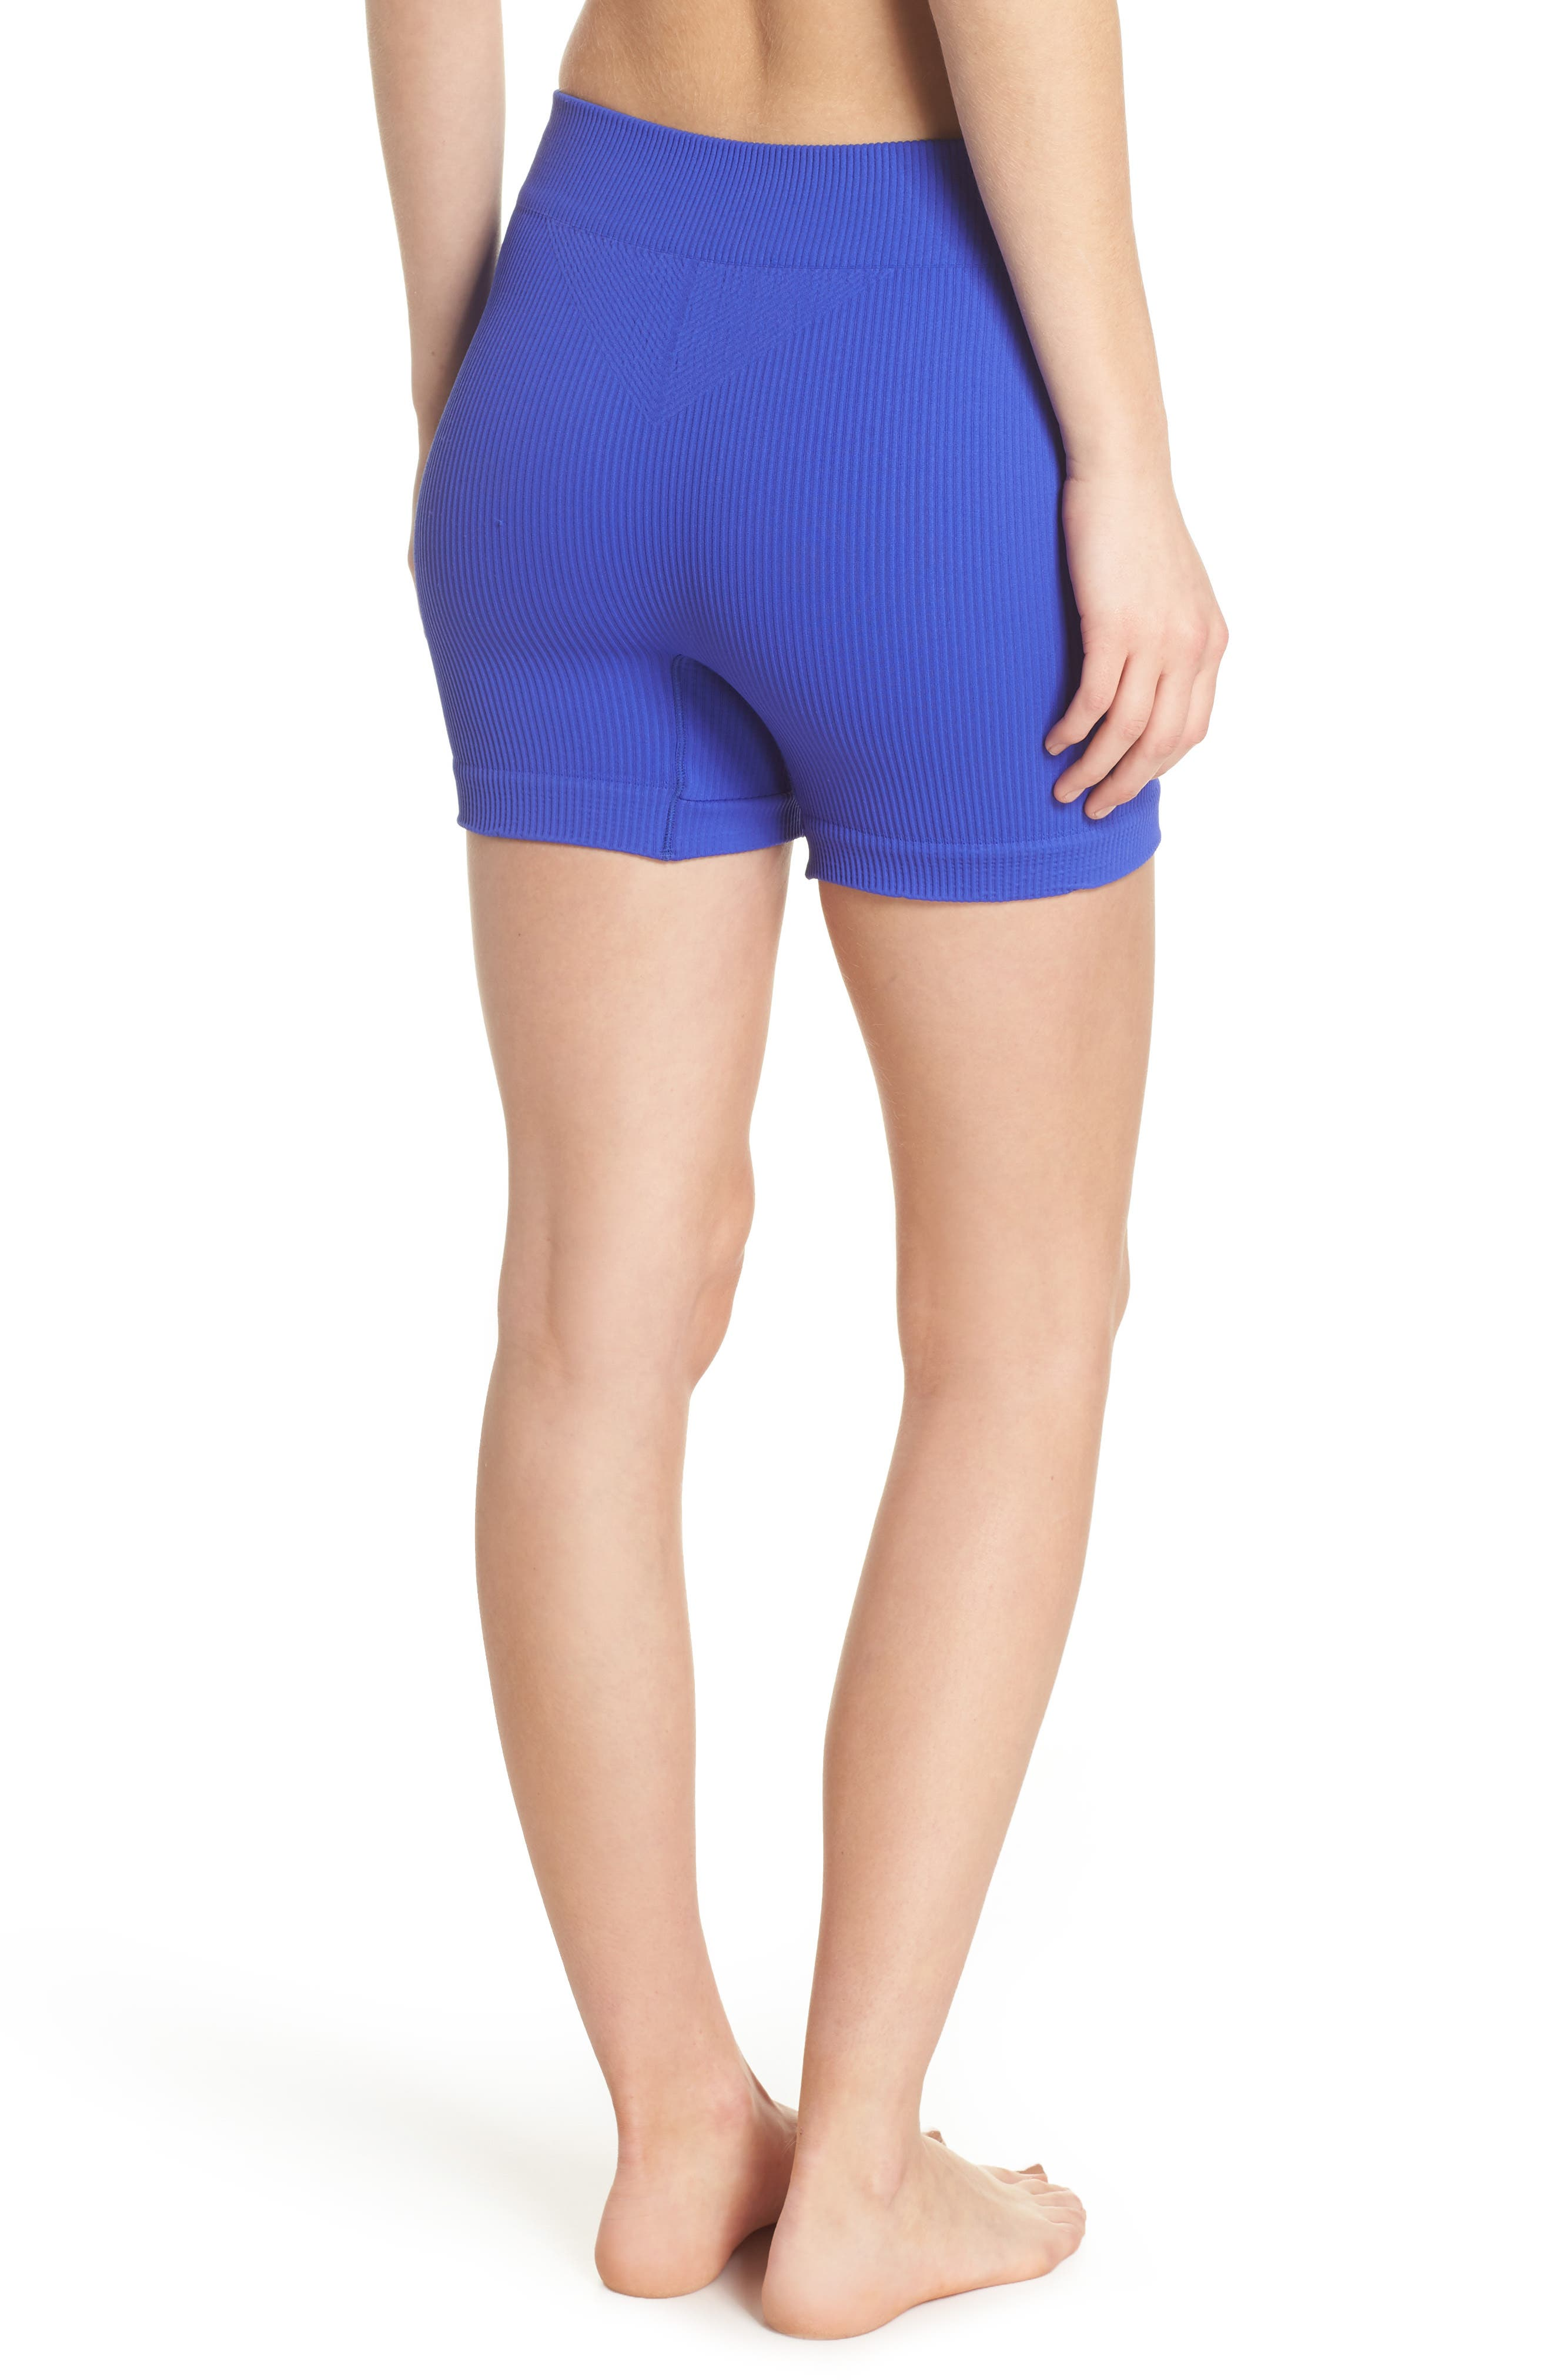 Free People Seamless Shorts,                             Alternate thumbnail 4, color,